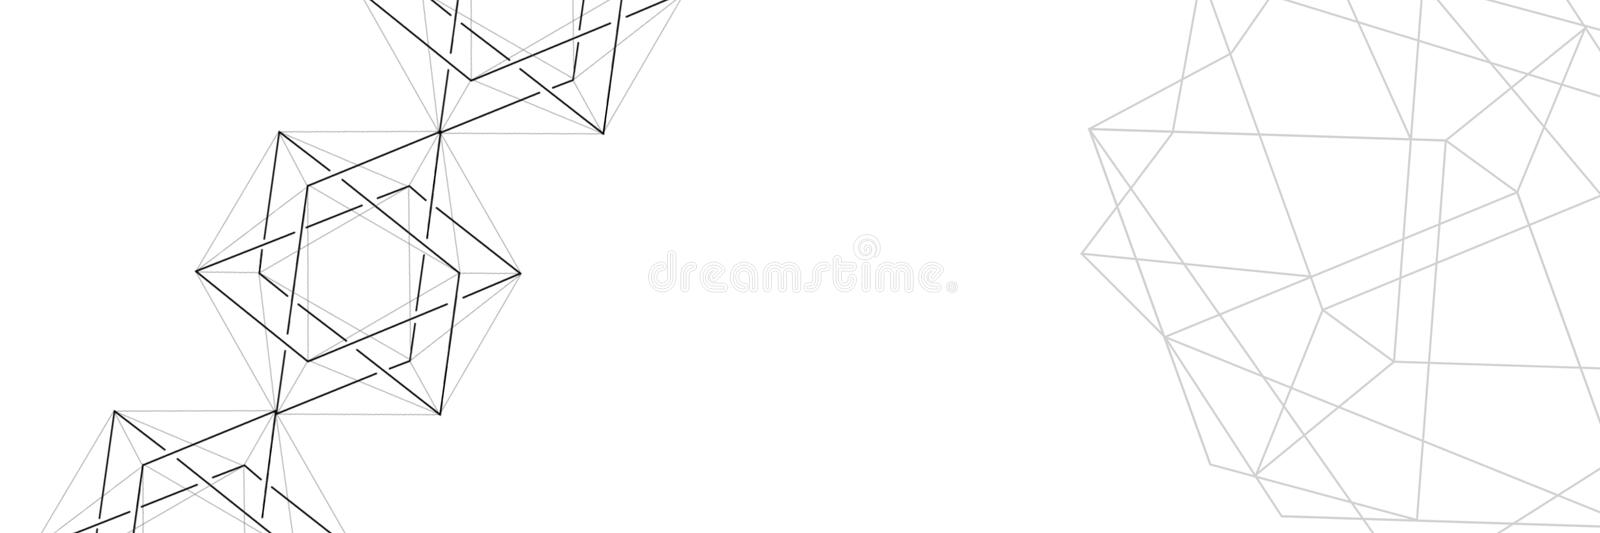 Abstraction. Background from triangles and polygons. Crumpled sheet of paper. royalty free stock photos